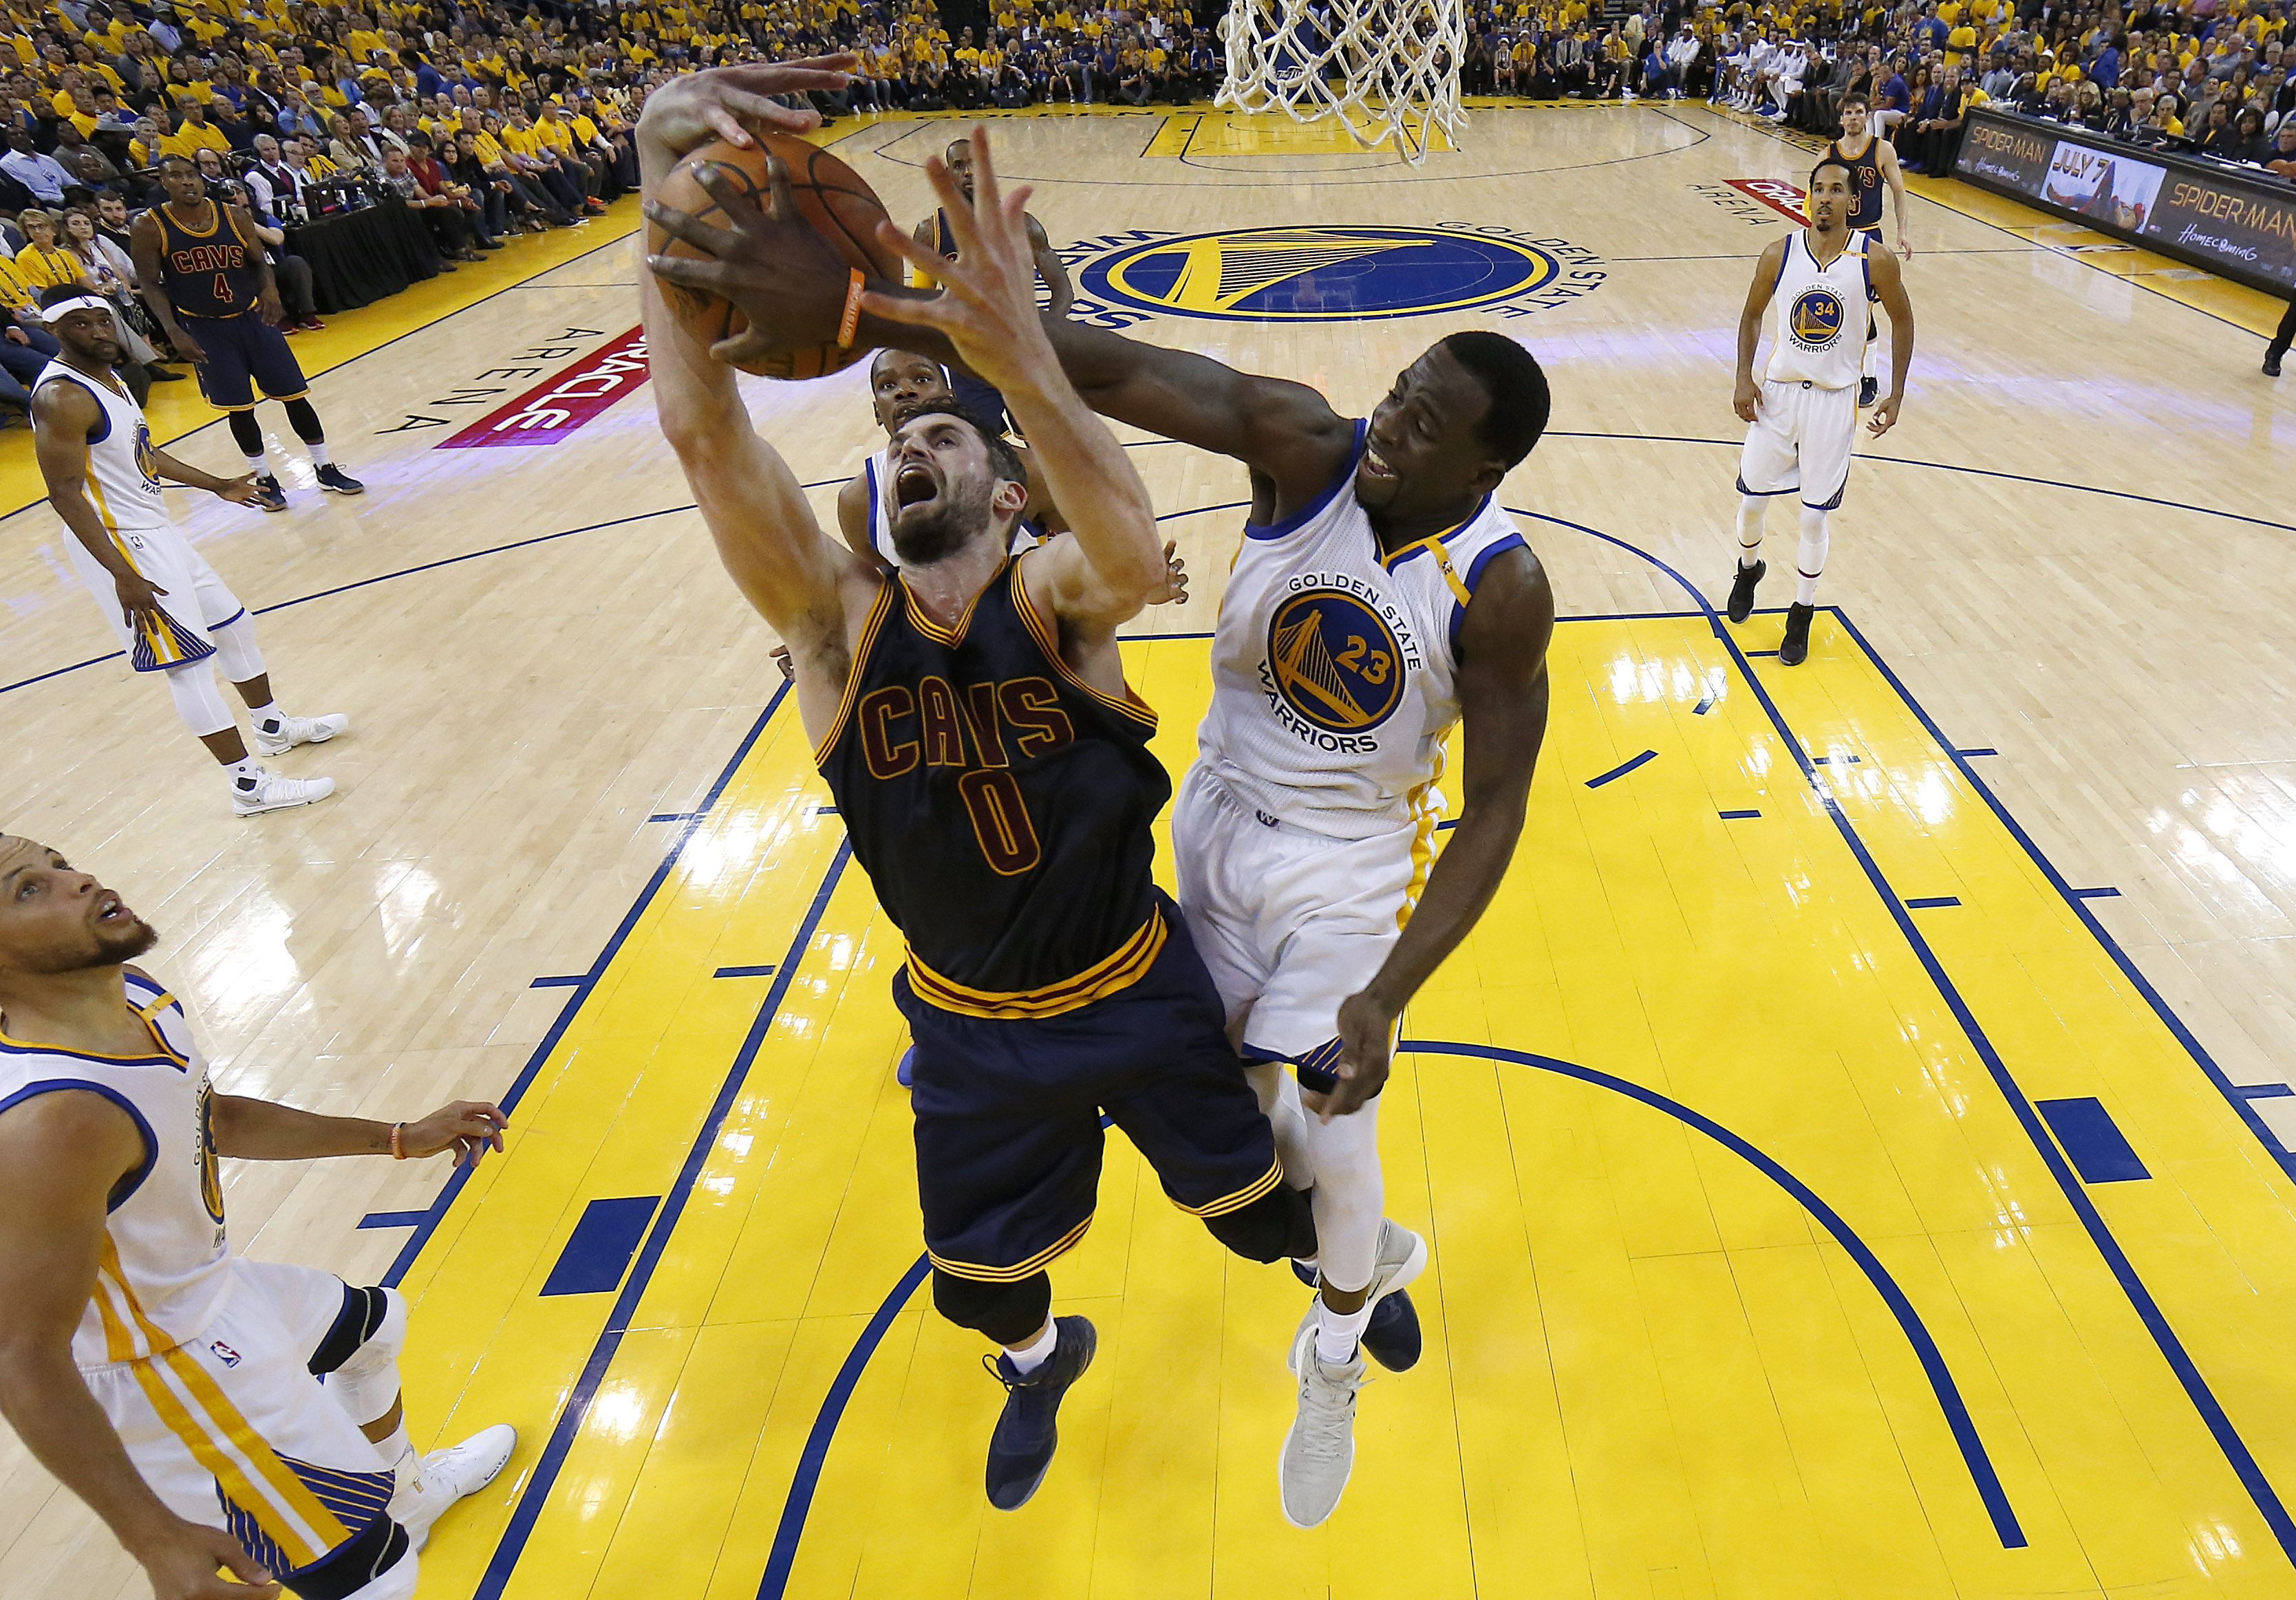 nba finals game 2 preview, nba finals game 2 keys, cavaliers game 2 keys, kevin love